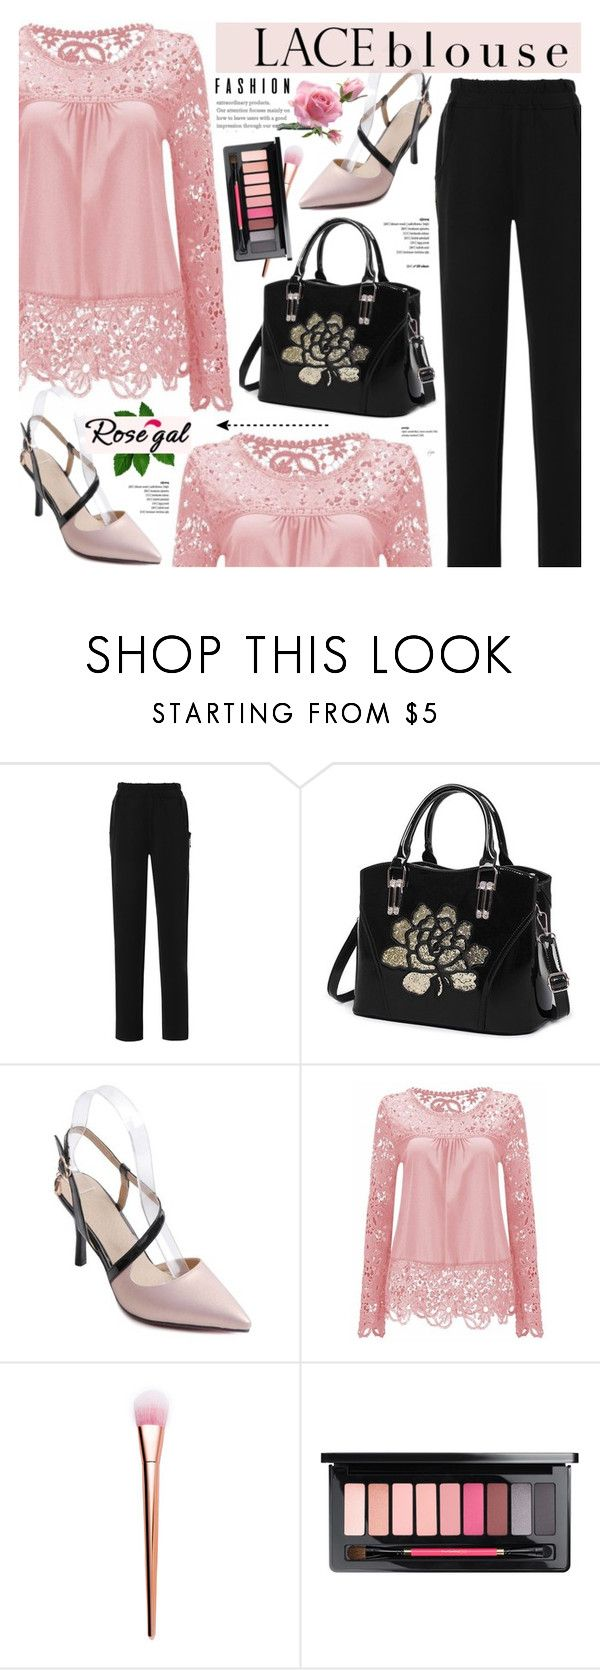 """Rosegal-lace blouse"" by cly88 ❤ liked on Polyvore"